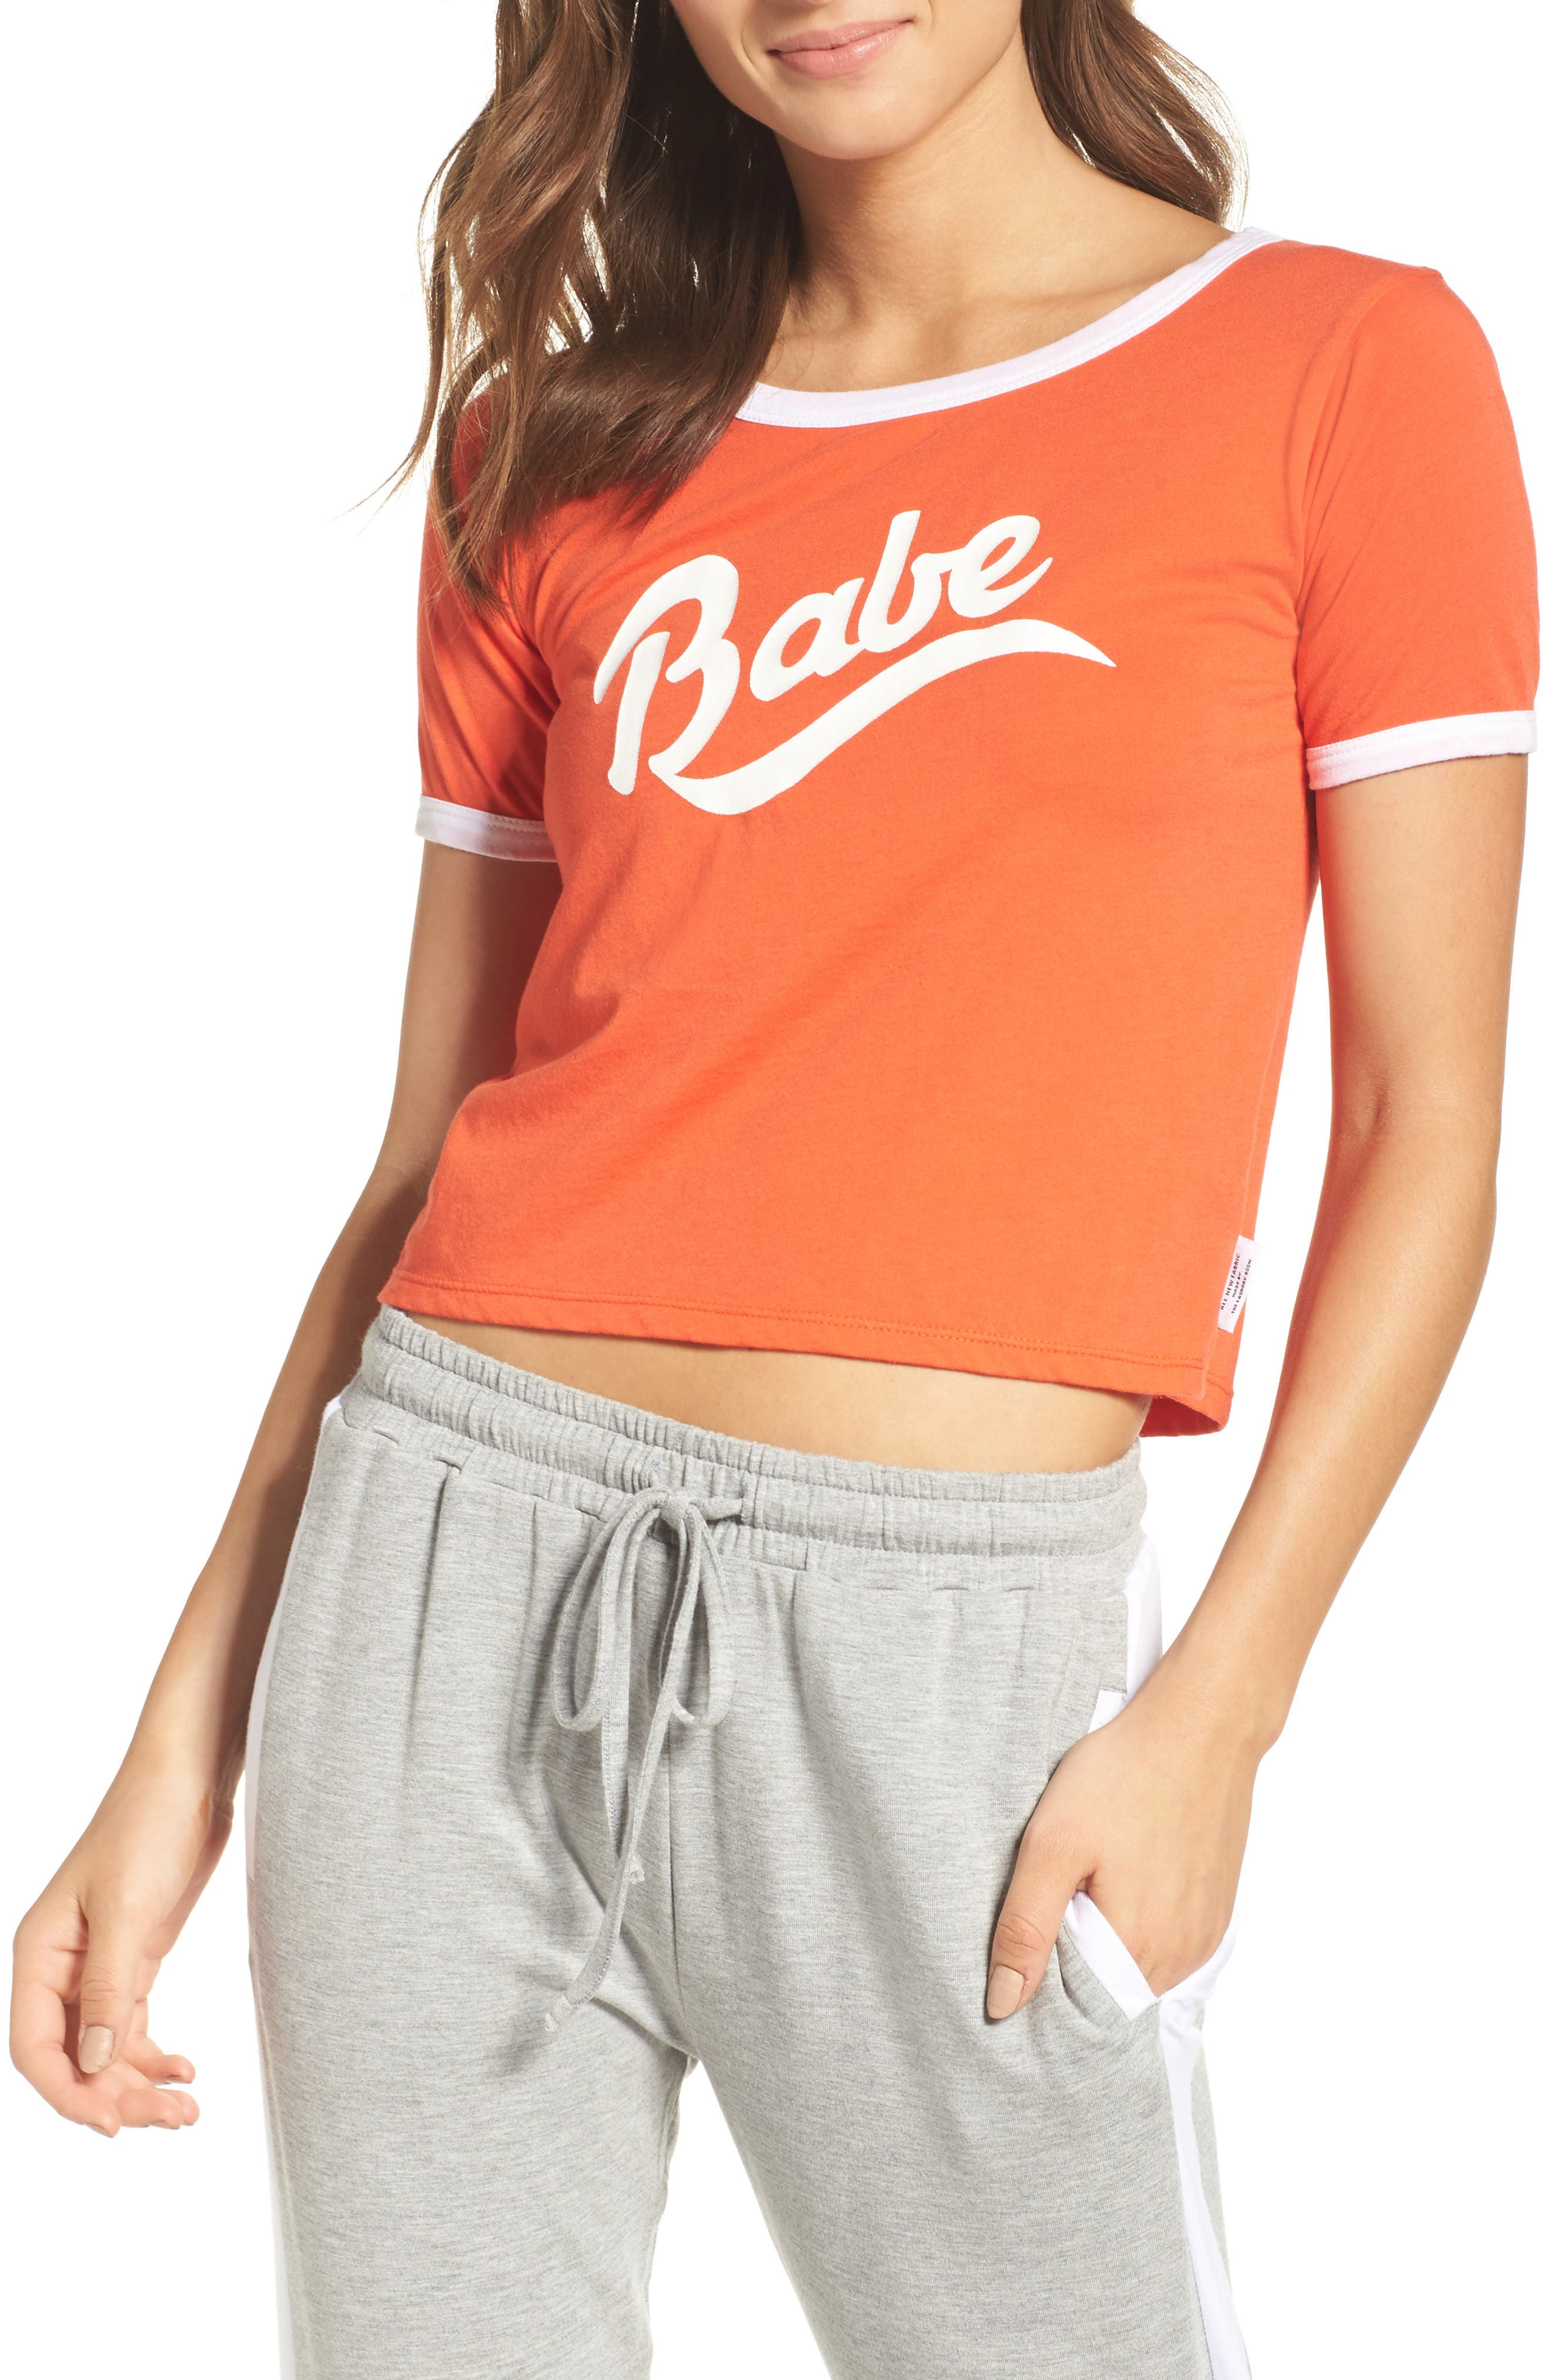 Alternate Image 1 Selected - The Laundry Room Babe Tee